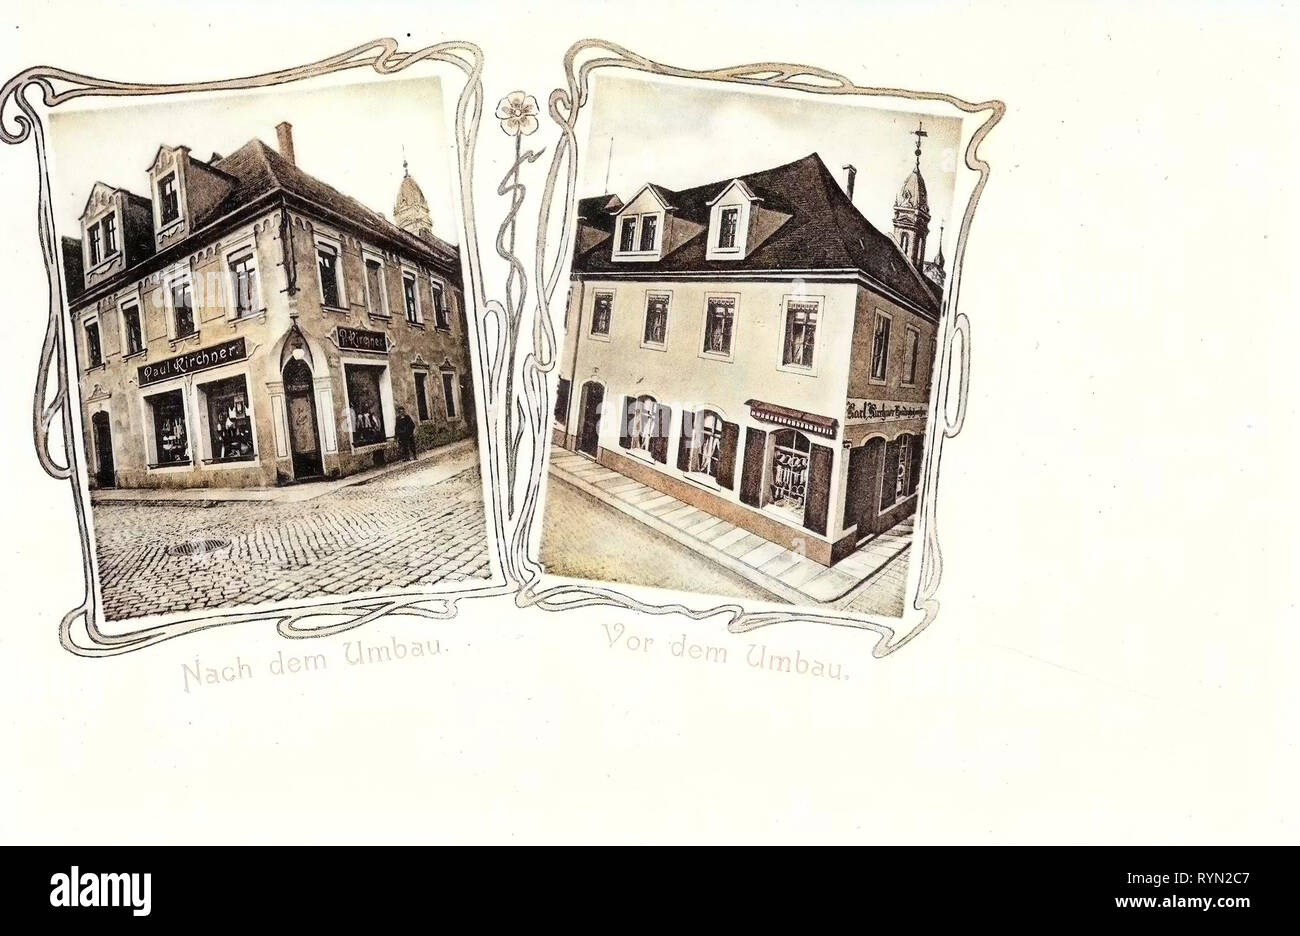 Multiview postcards, Buildings in Koropets, Shops in Ternopil Oblast, 1903 postcards, Koropiec, 1903, Paul Kirchners Geschäft Stock Photo